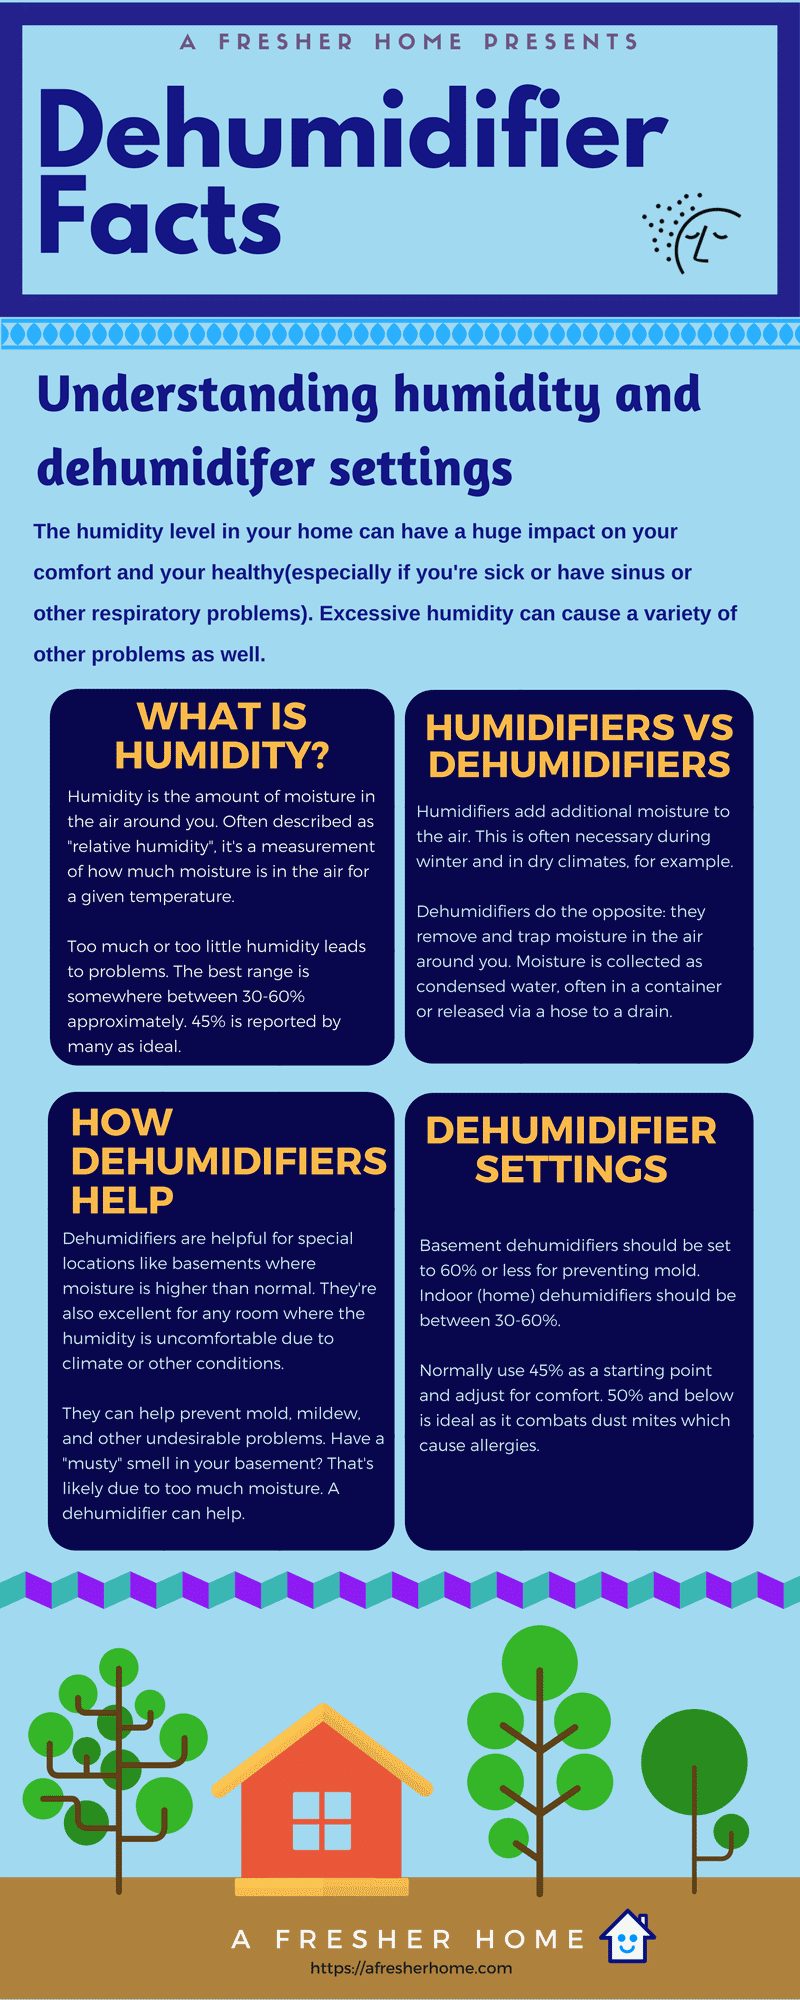 Ideal Humidity For Bedroom.What Humidity Should I Set My Dehumidifier To